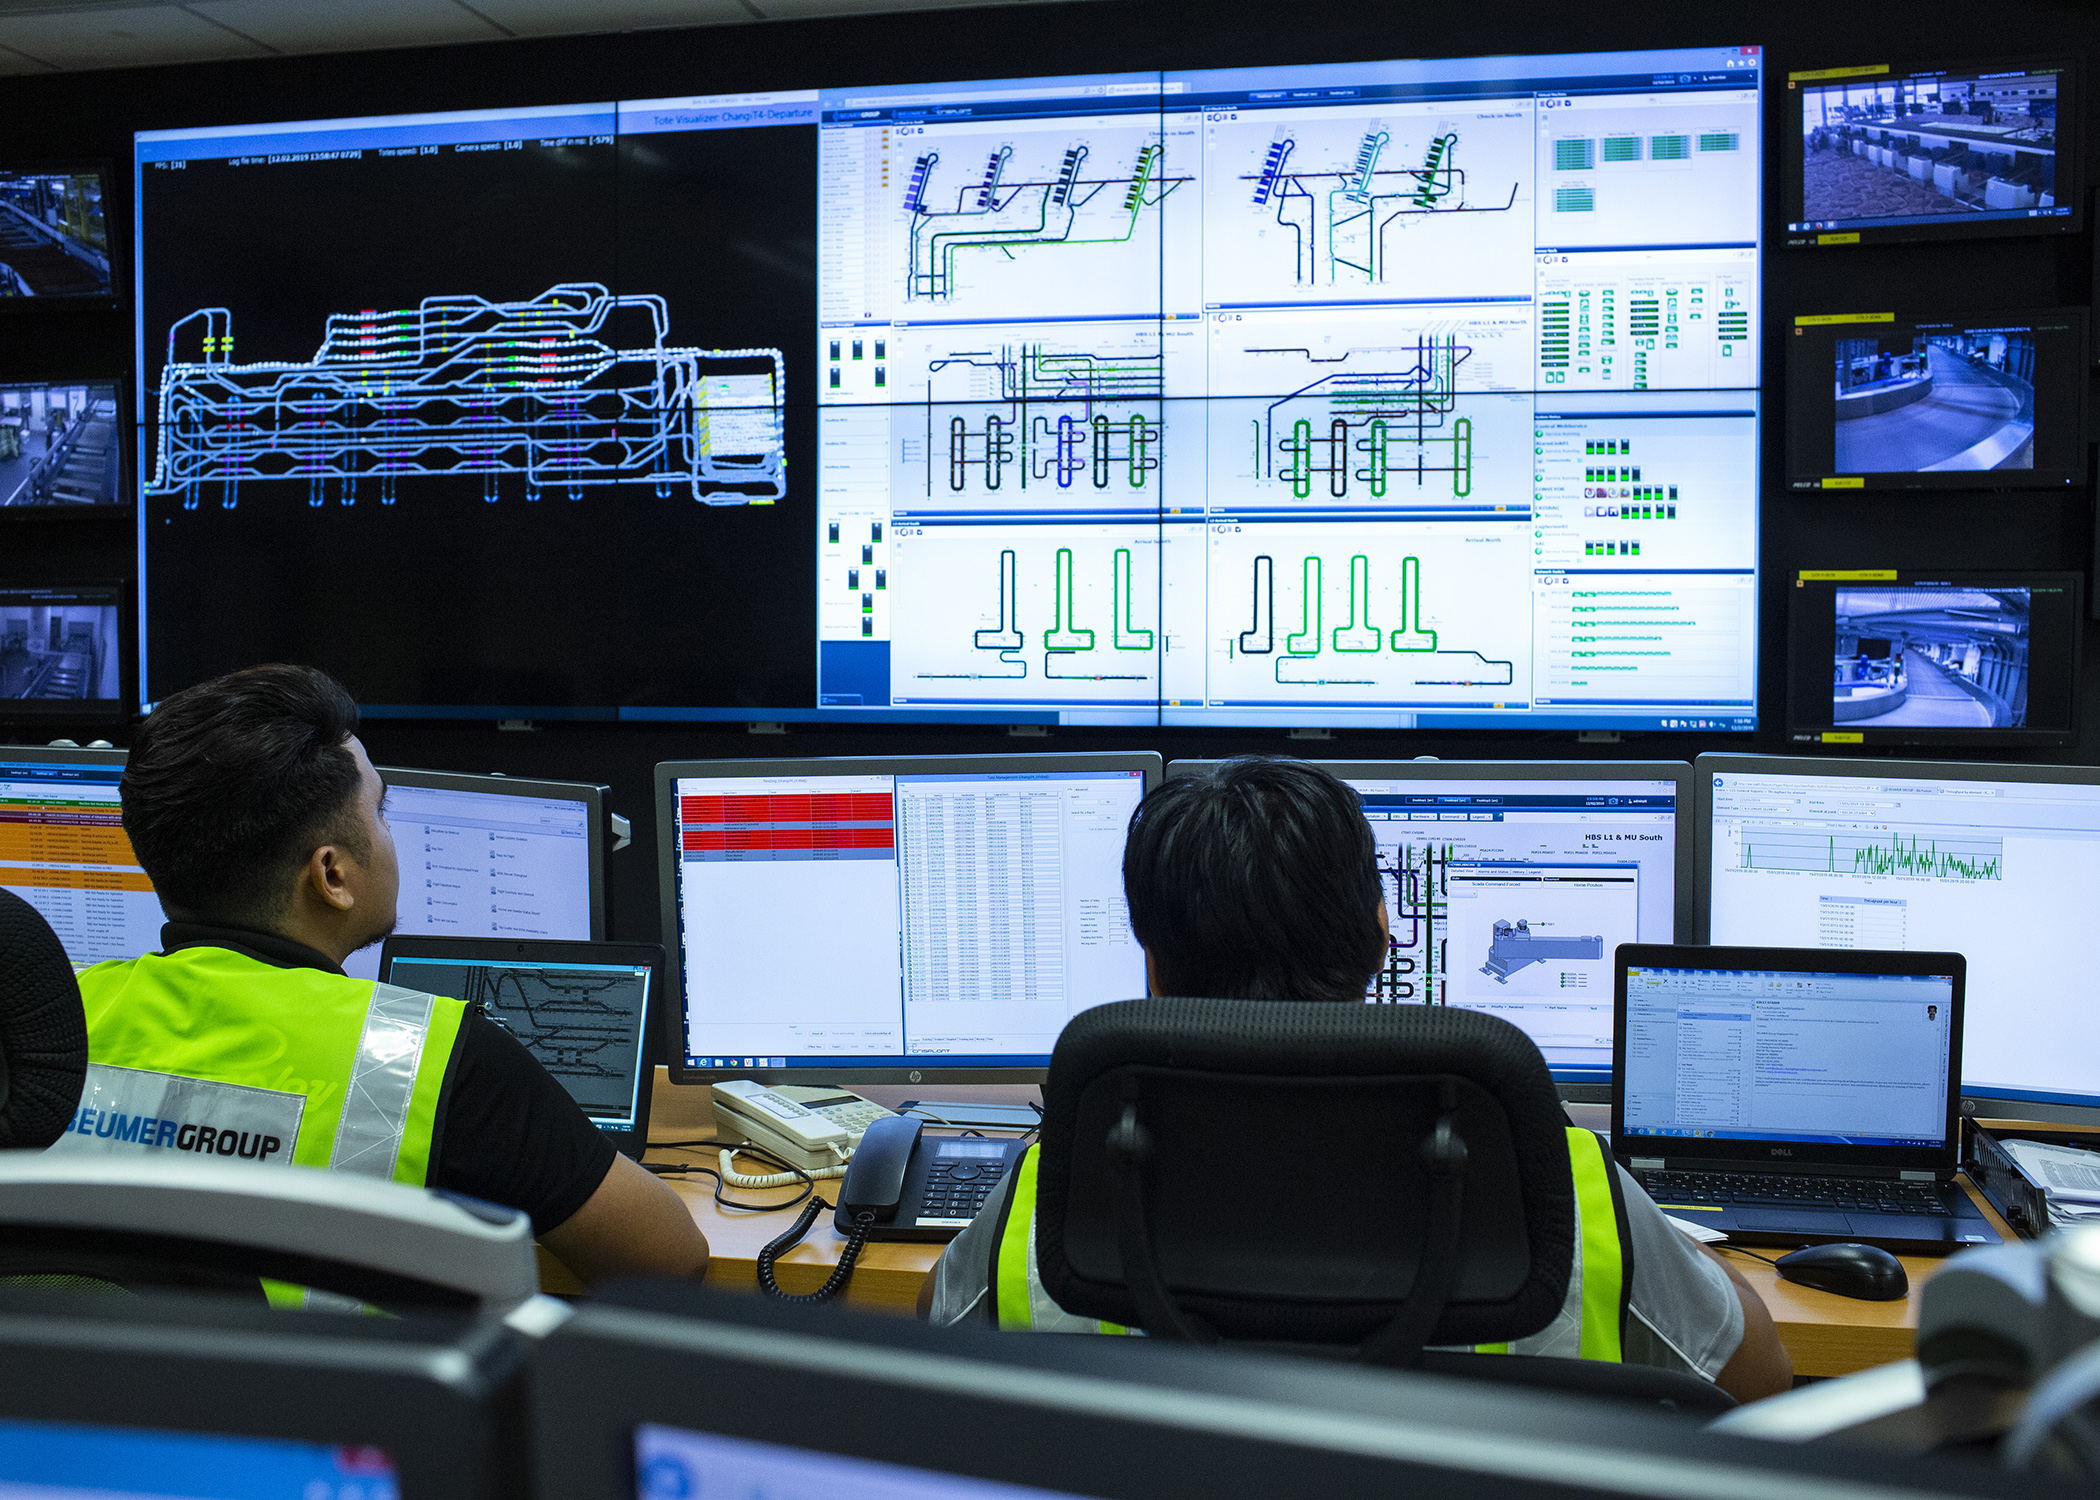 BEUMER Group Demonstrate Data-Driven Efficiency with Live BHS Control Room at Inter Airport 2019